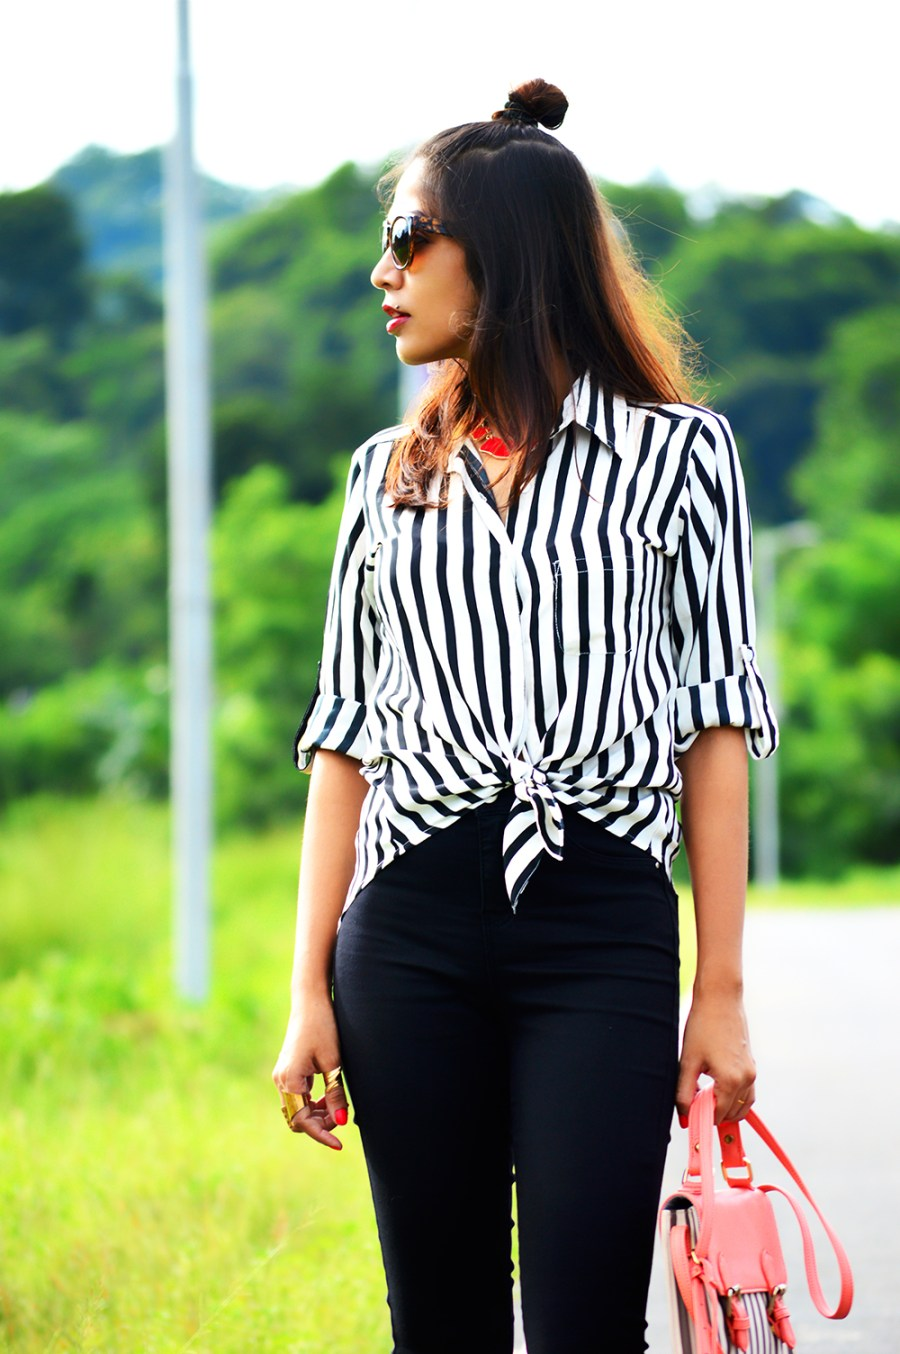 Fashion, Style, Indian Fashion Blogger, Fashion Blogger, Street Style, Summer Fashion, Stripes, Striped Shirt, Black High Wasit Jeans, Black Boots, Hairstyle, Style Over Coffee, Beauty, Sarmistha Goswami, Pankaj Jyoti Barua-3